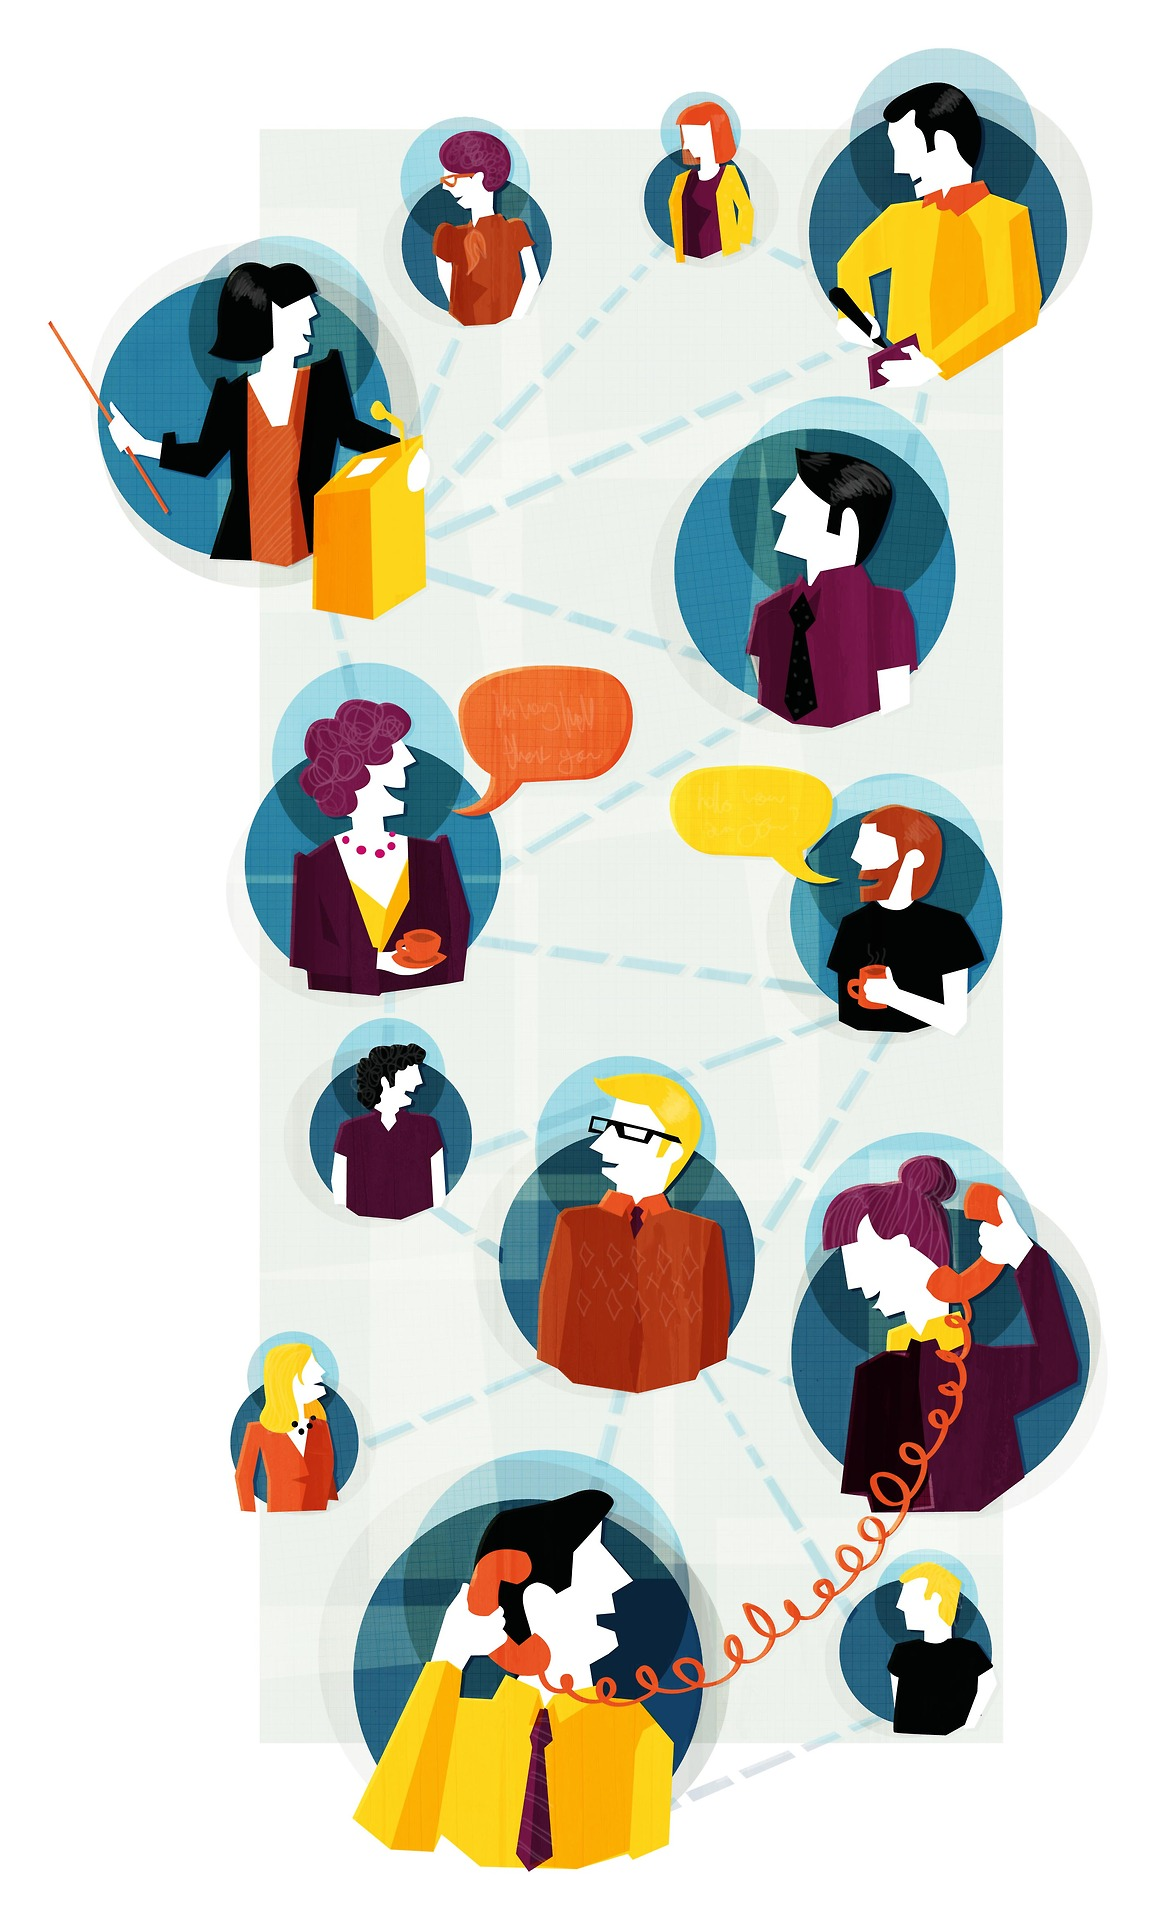 an Illustration for Professional Manager magazine about networking